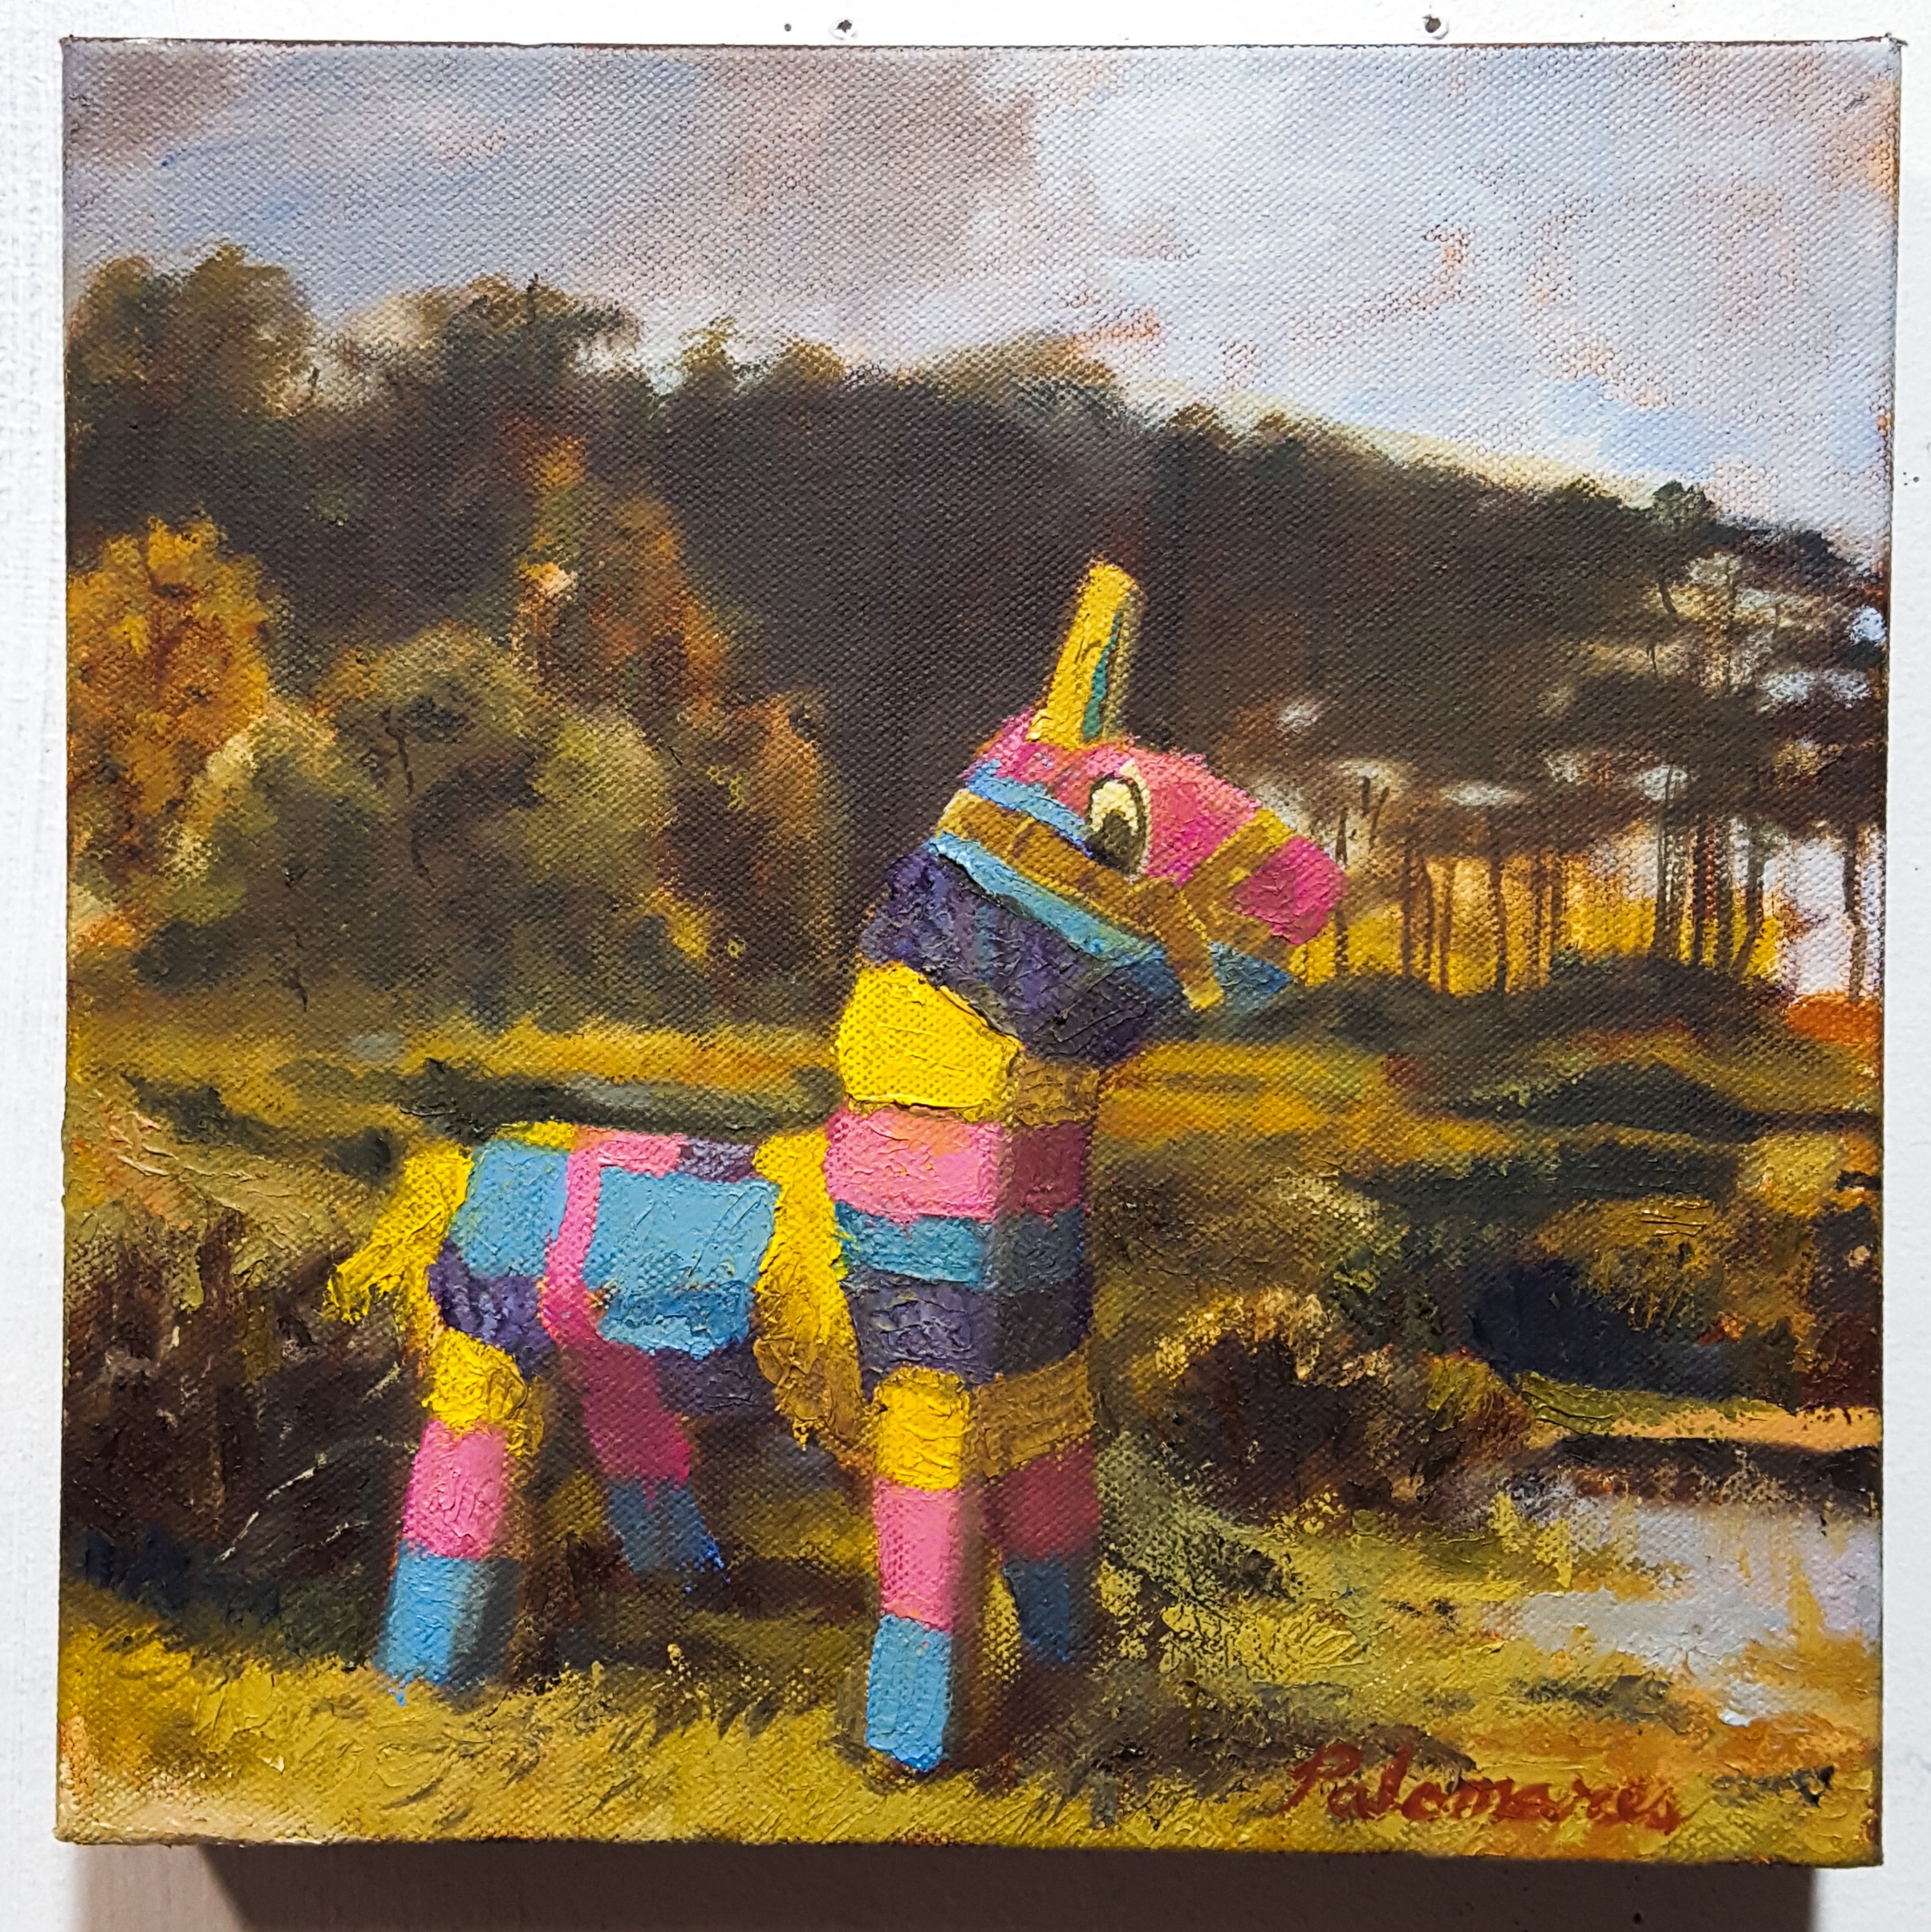 Piñata in English landscape.